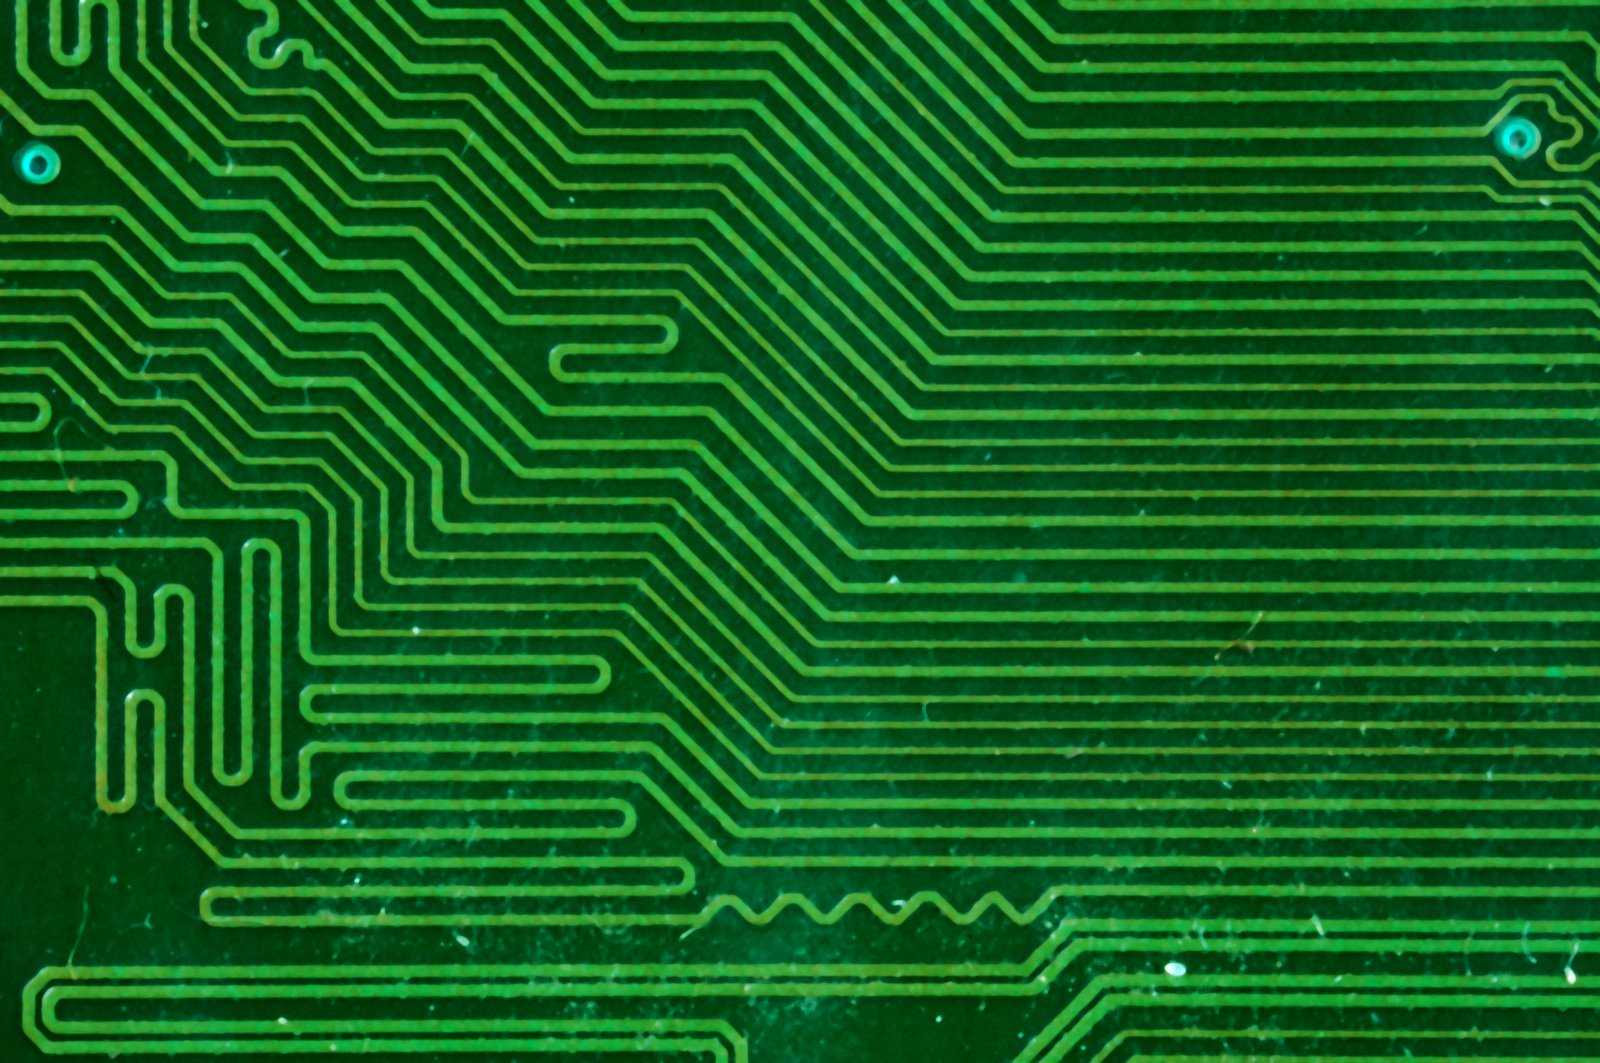 Free Circuit Board Images Pictures And Royalty Stock Photos Pcb Printed 13 Image Texture 1